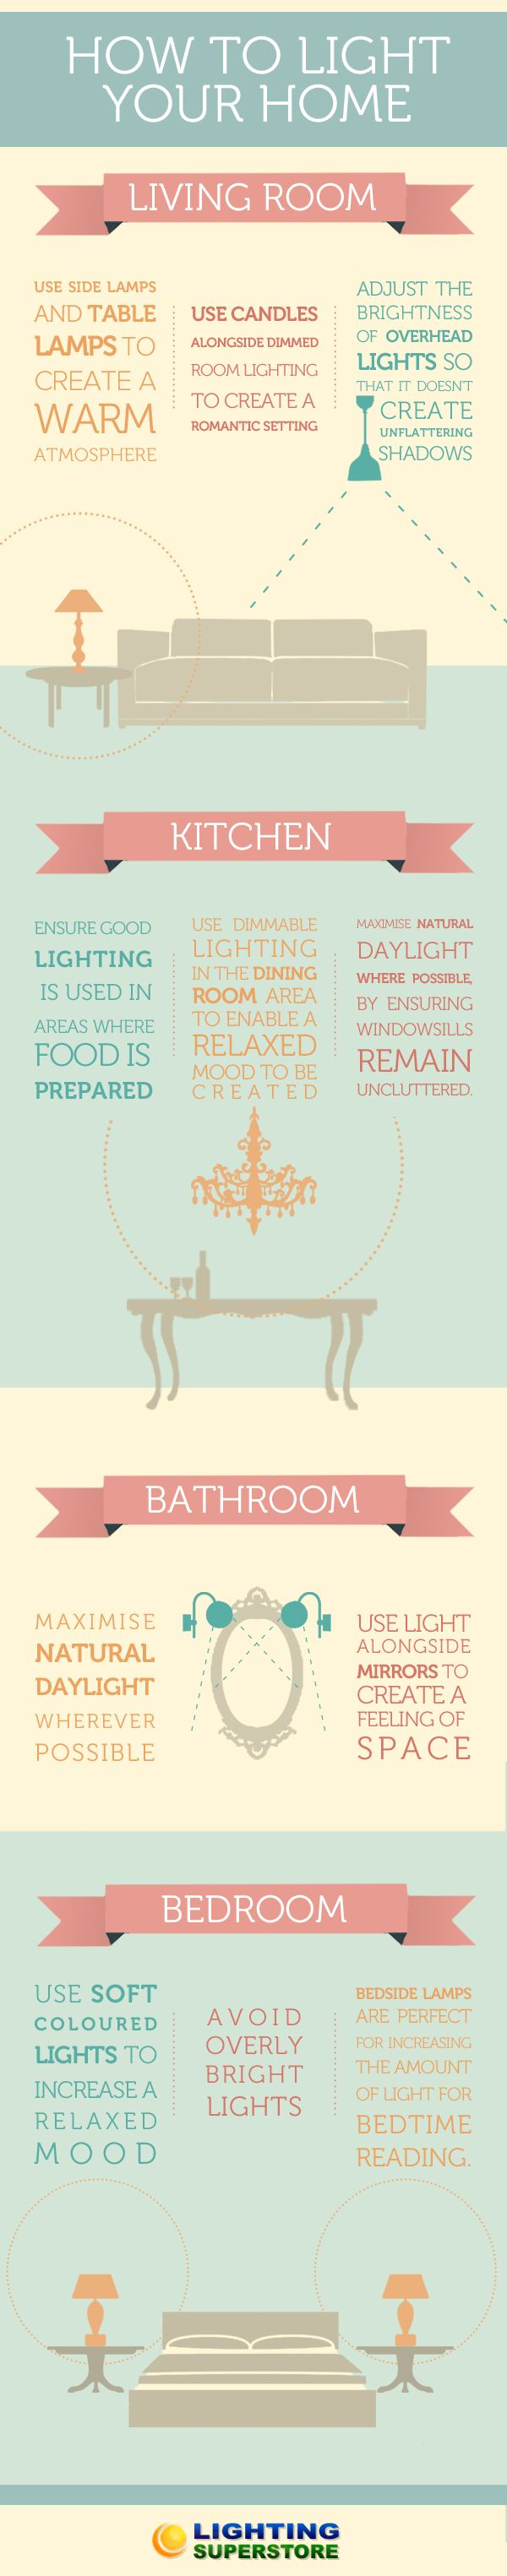 233 Best Home Feng Shui Images On Pinterest Bedroom Home Ideas And Interior Decorating